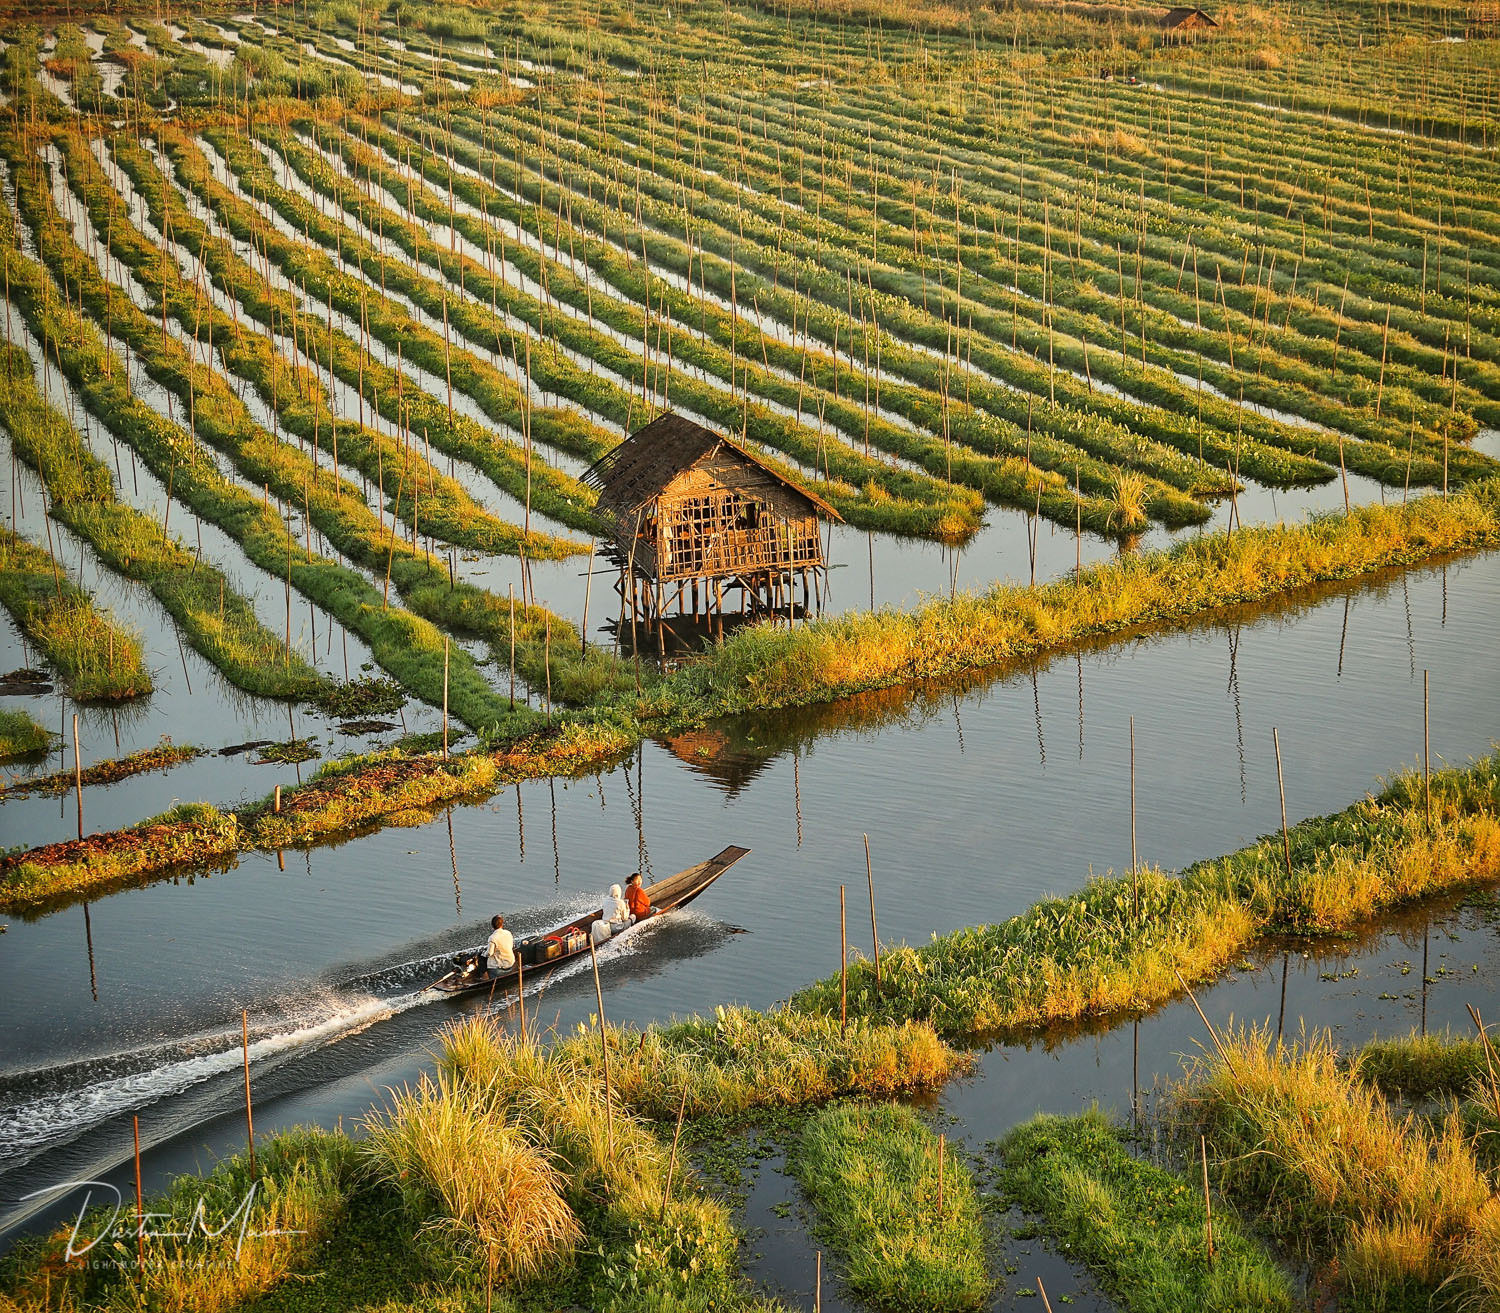 A boat leaves the village and heads through the floating gardens of Inle Lake (Myanmar) after sunrise. © Dustin Main 2017